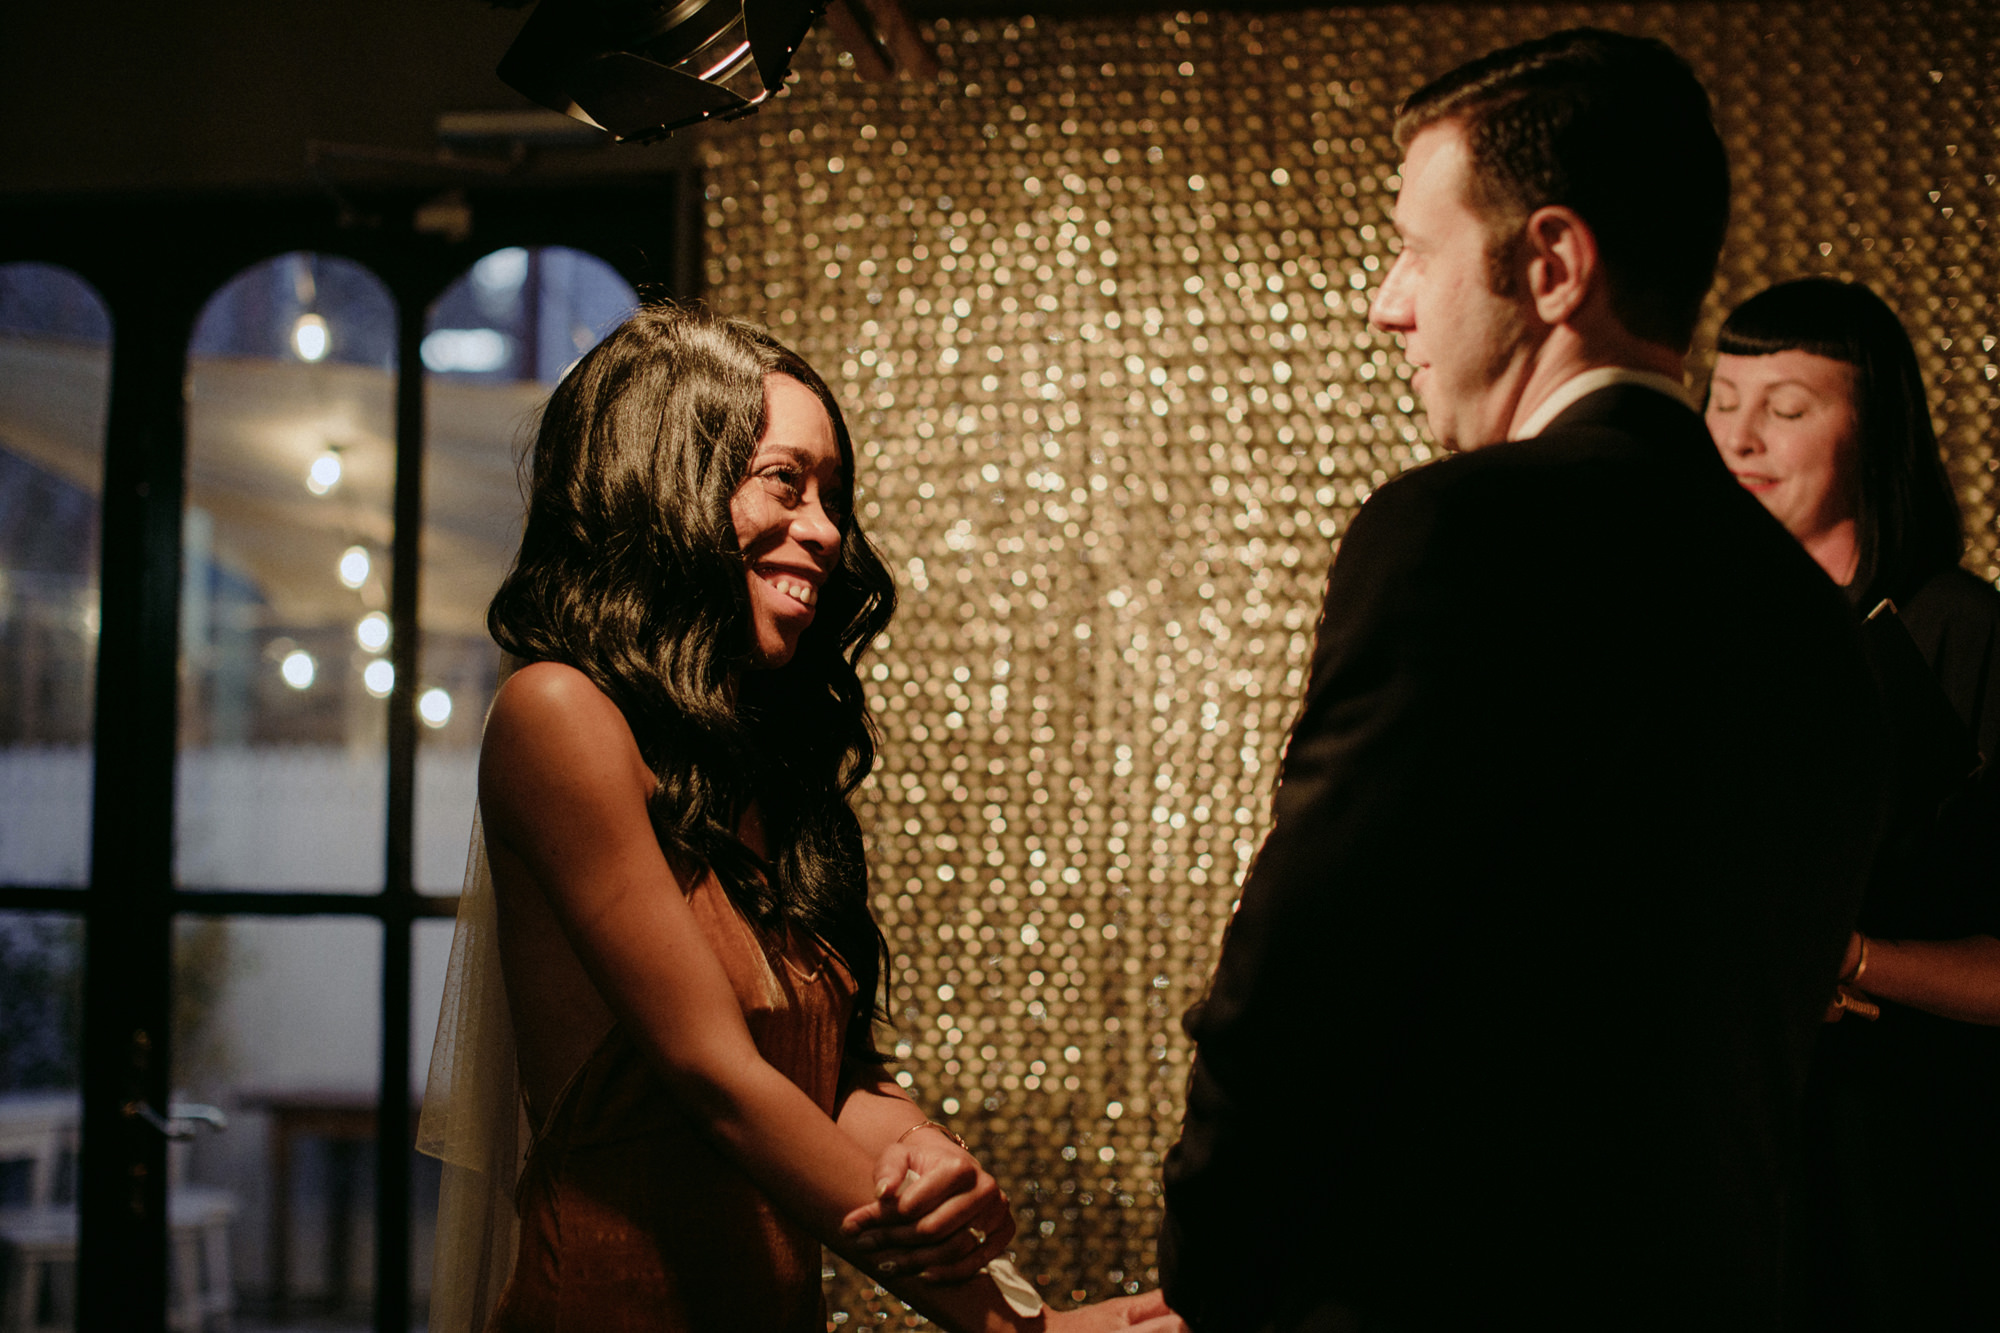 BROOKLYN_ELOPEMENT_SAMMBLAKE_NDE_510.jpg